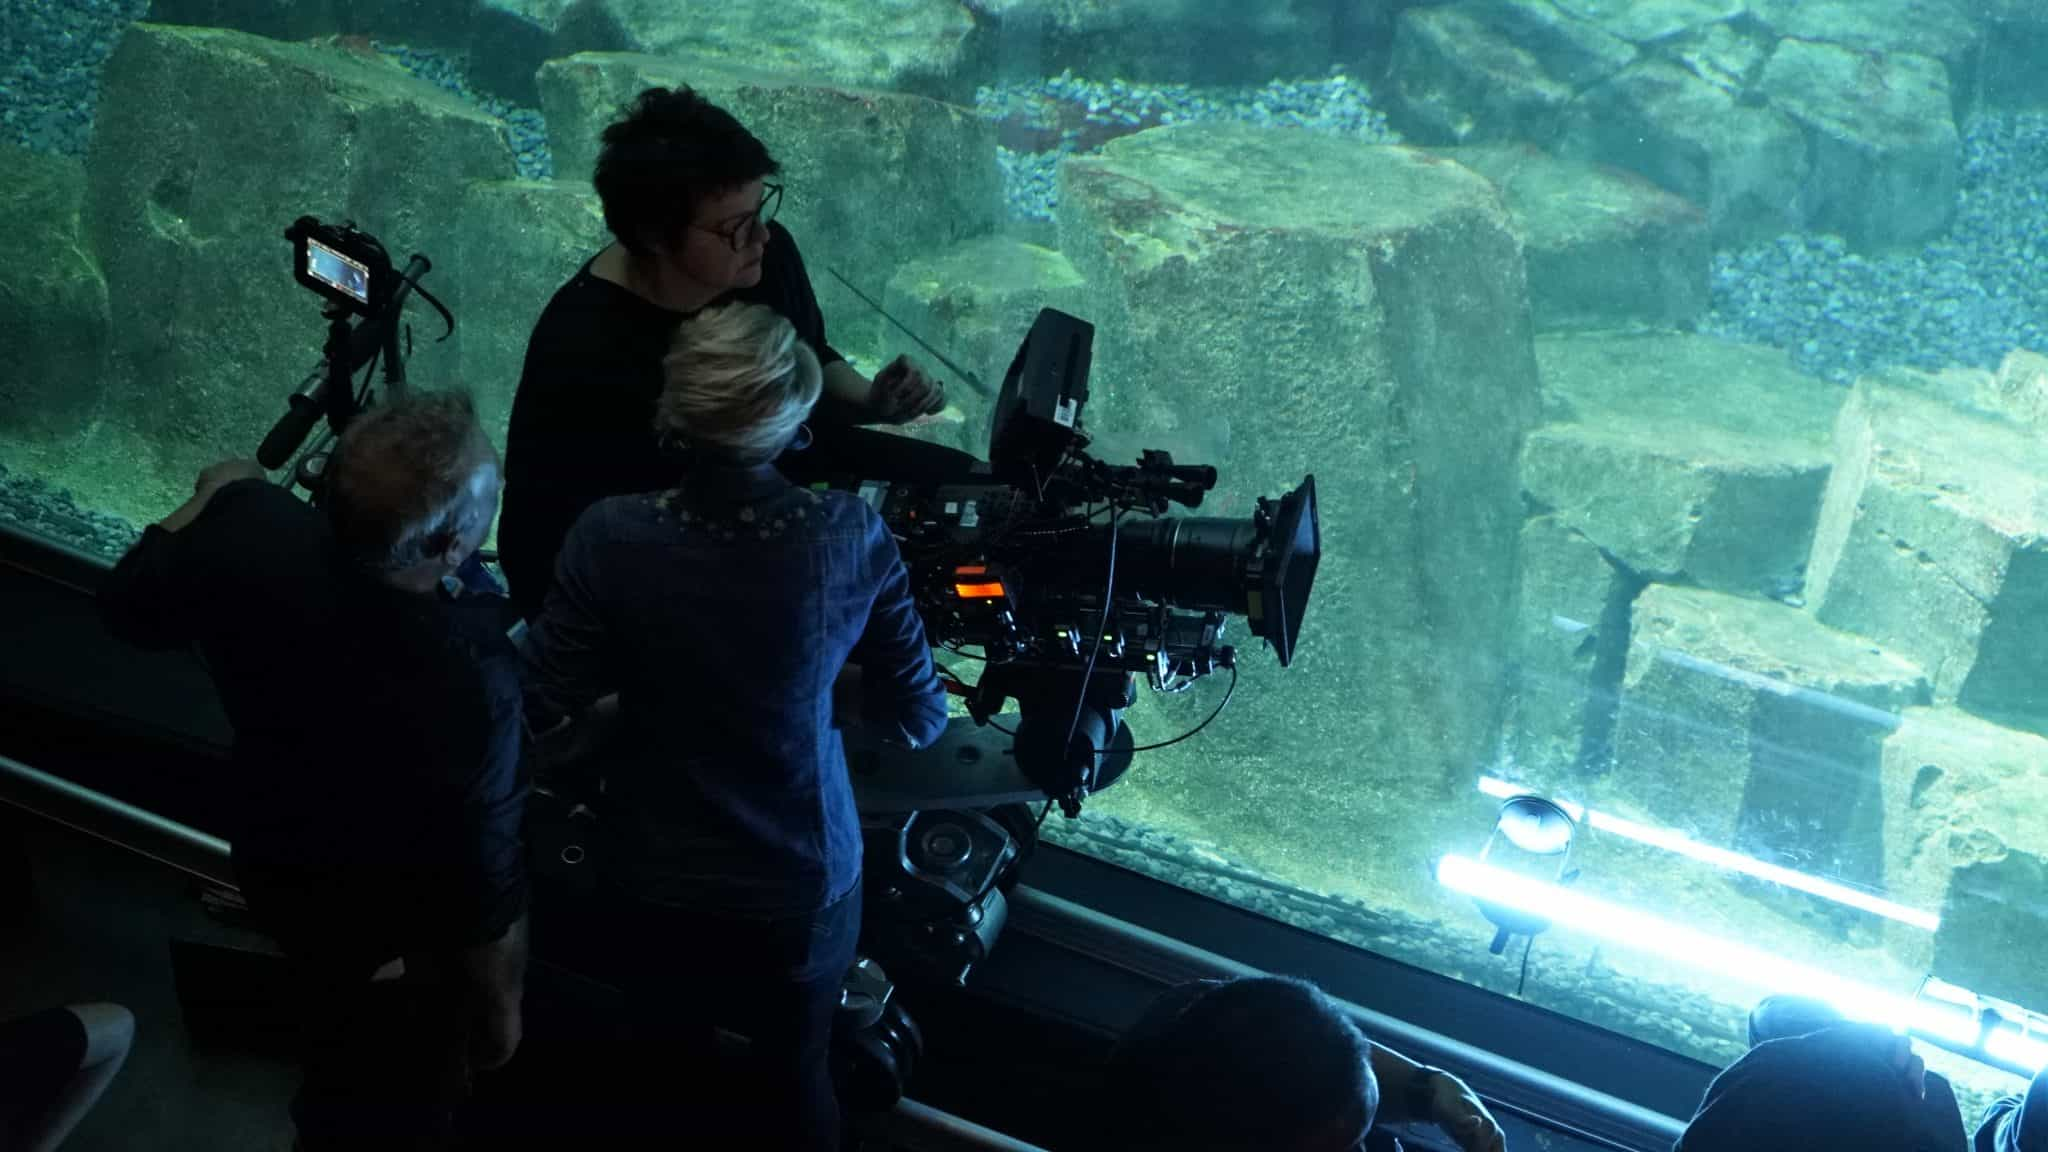 Tournage Lounge camera vitre technique - Aquarium de Paris